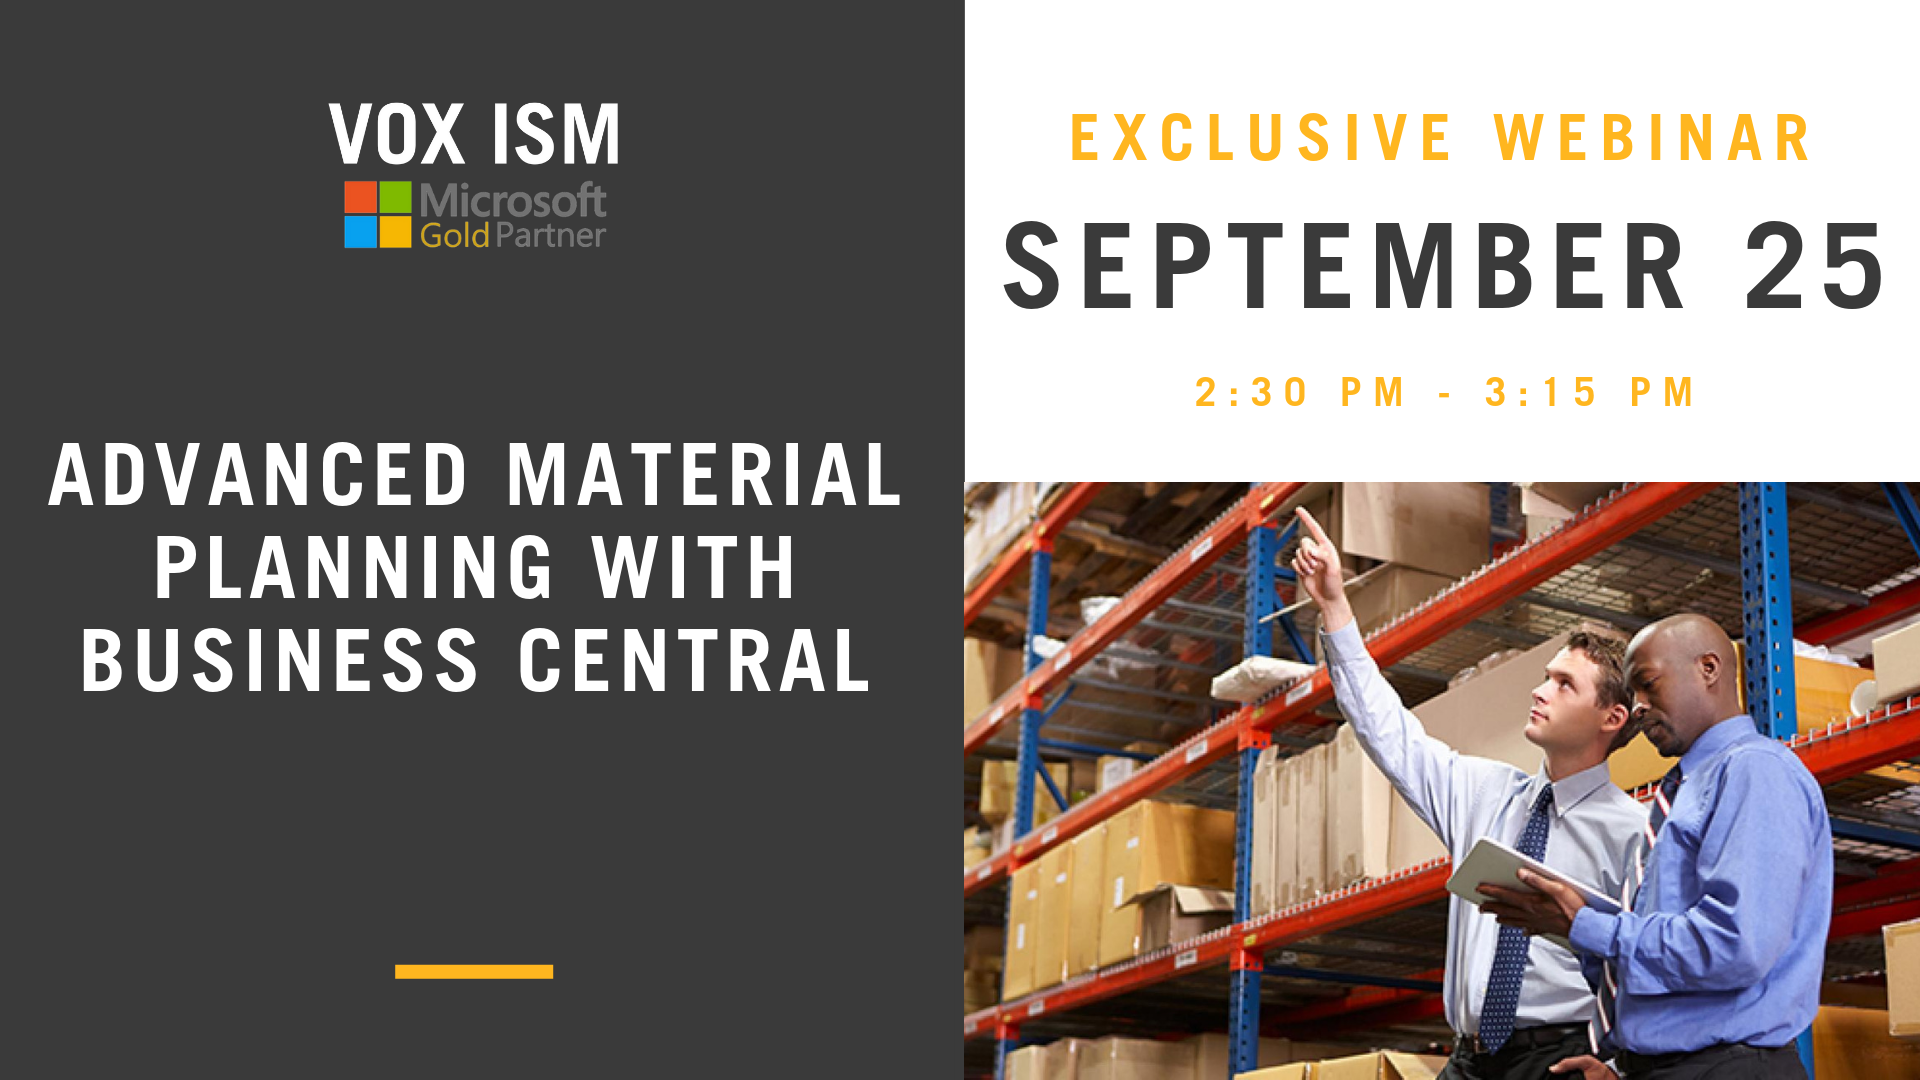 Advanced Material Planning with Business Central - September 25 - Webinar - VOX ISM